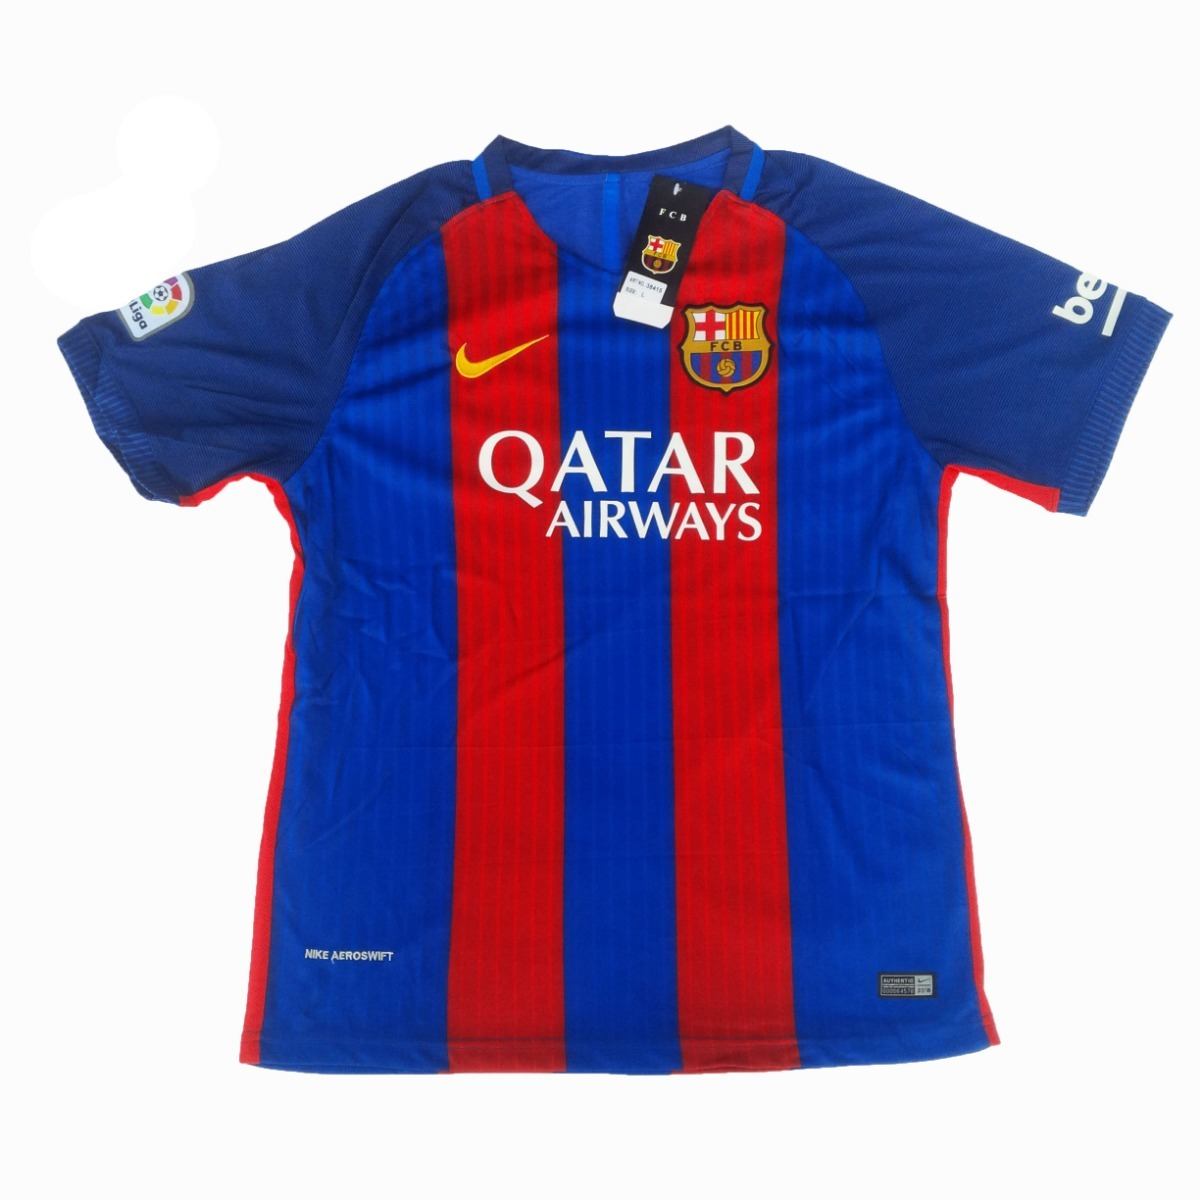 c3bbad3285799 Camiseta Camisa Fc Barcelona Local 2016- 2017 -   35.000 en Mercado ...